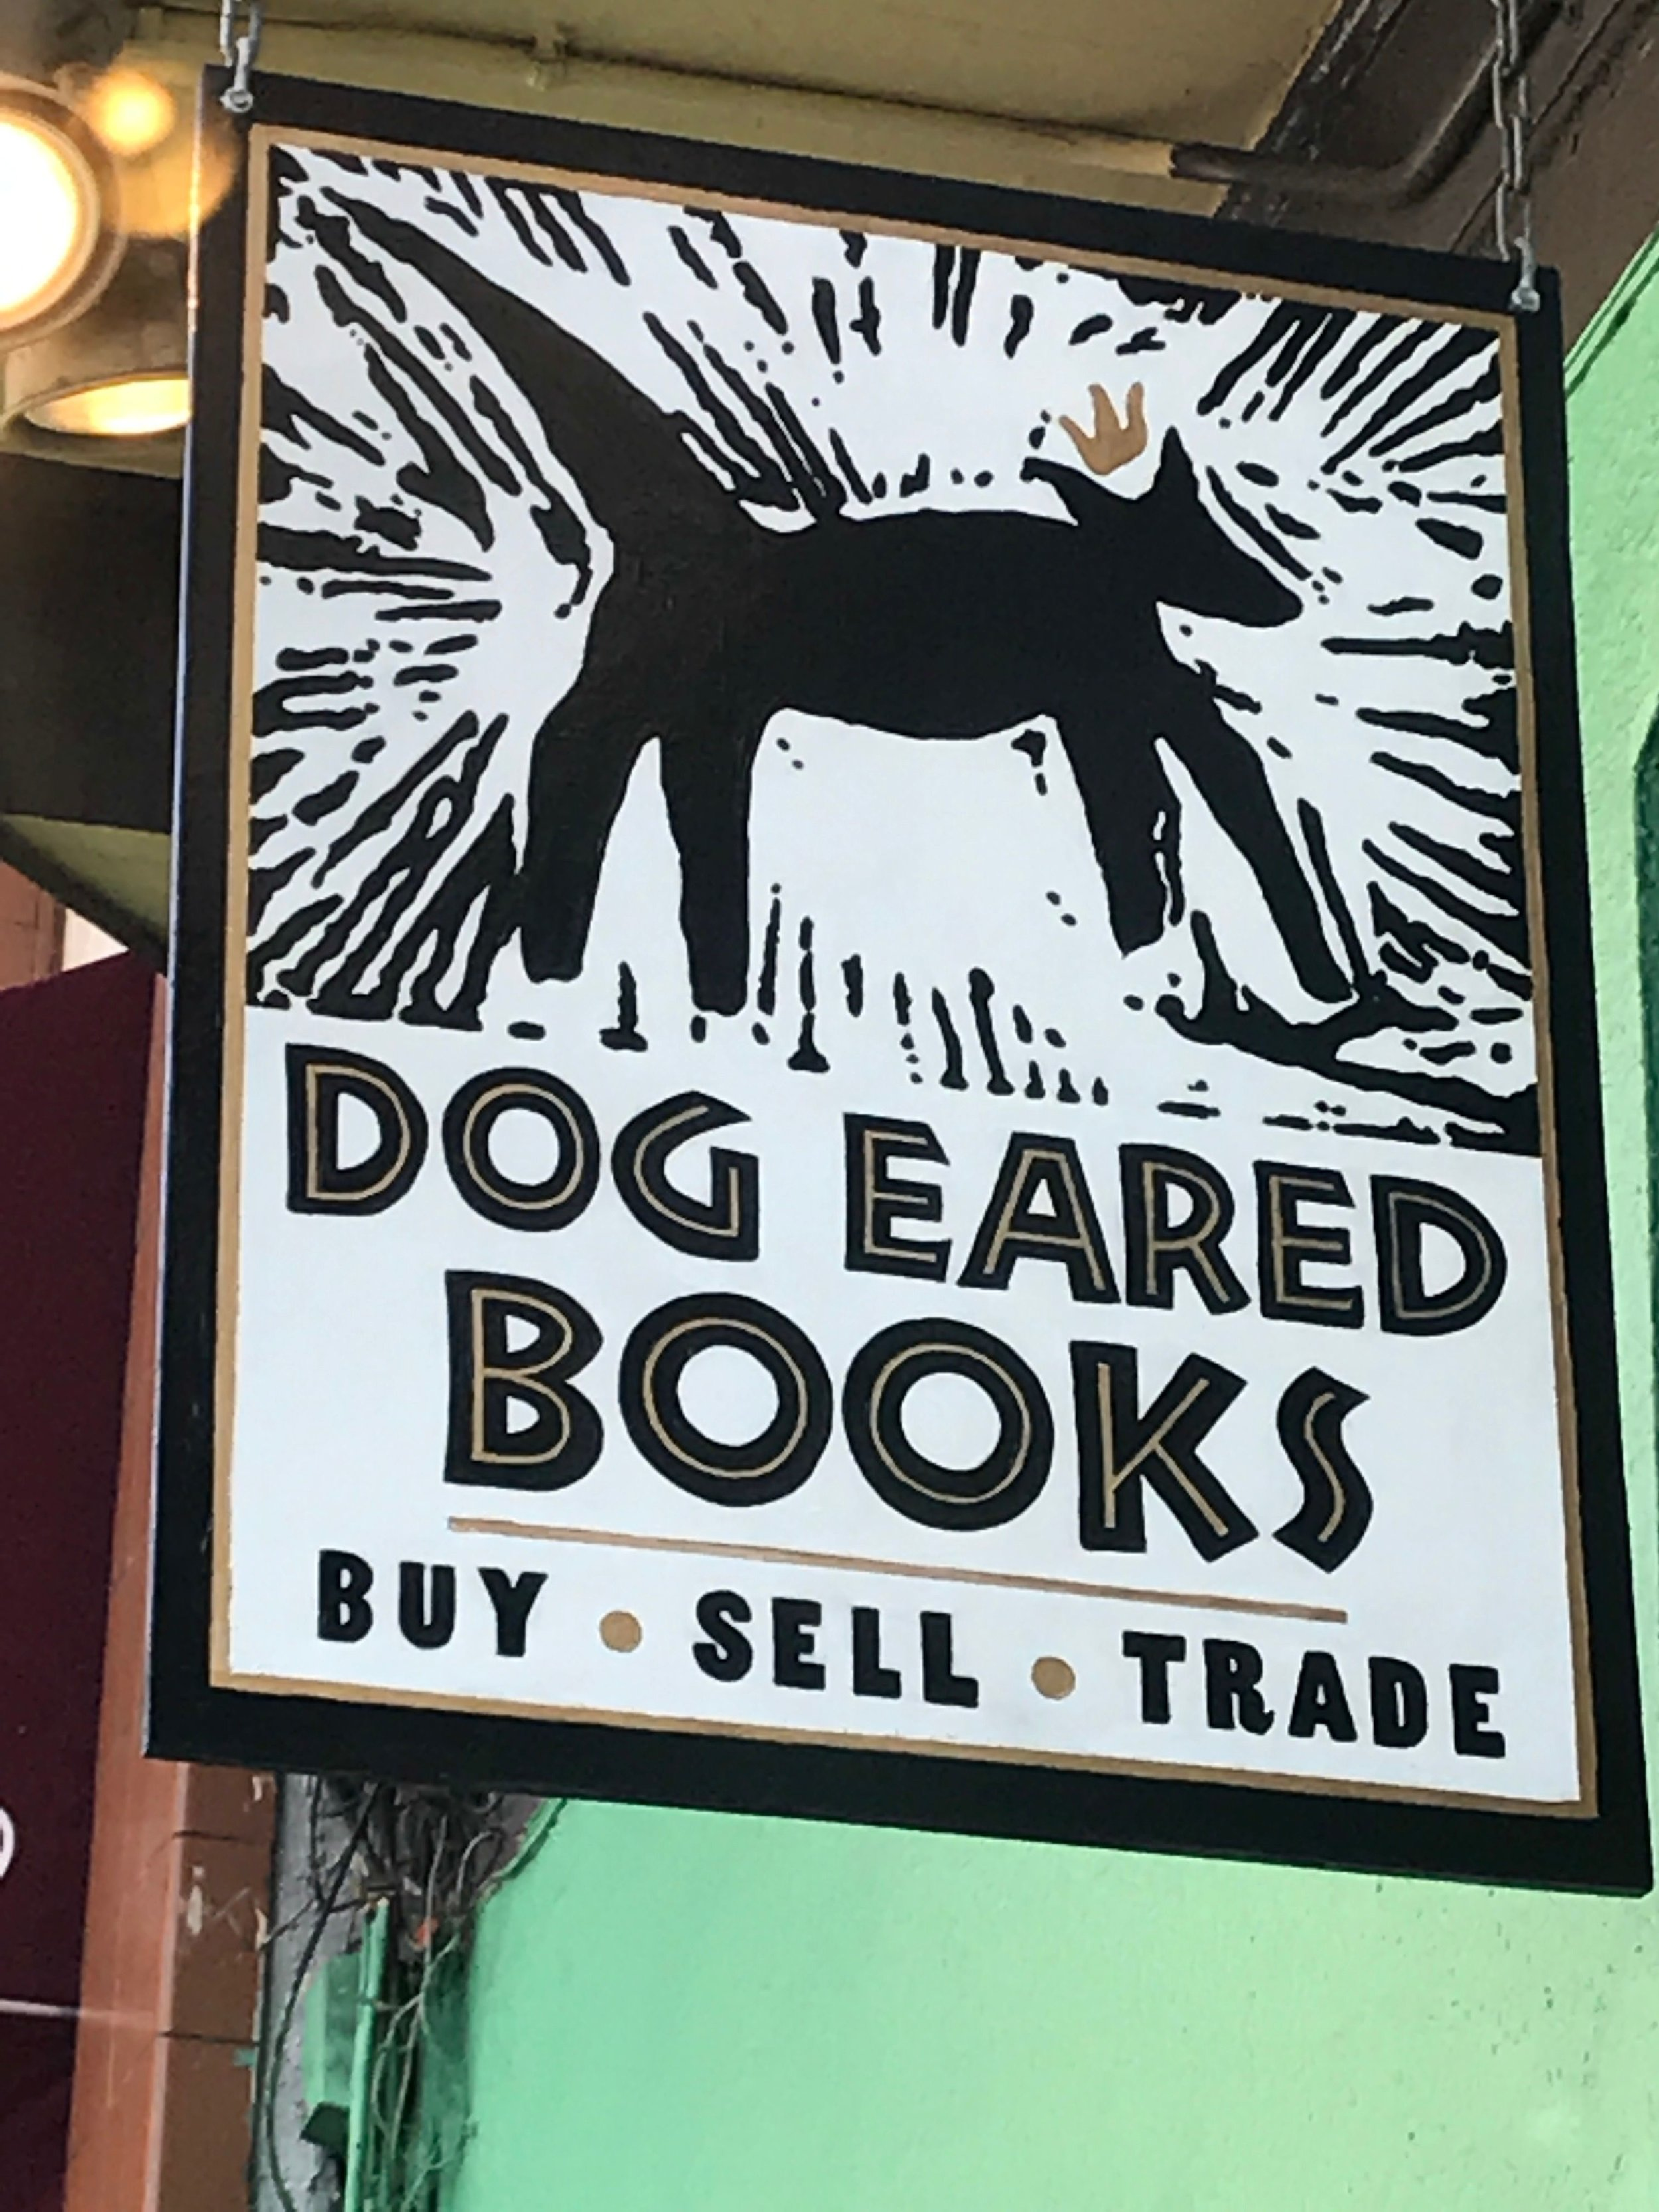 San-Francisco-Dog-Eared-Books-compressor.jpeg